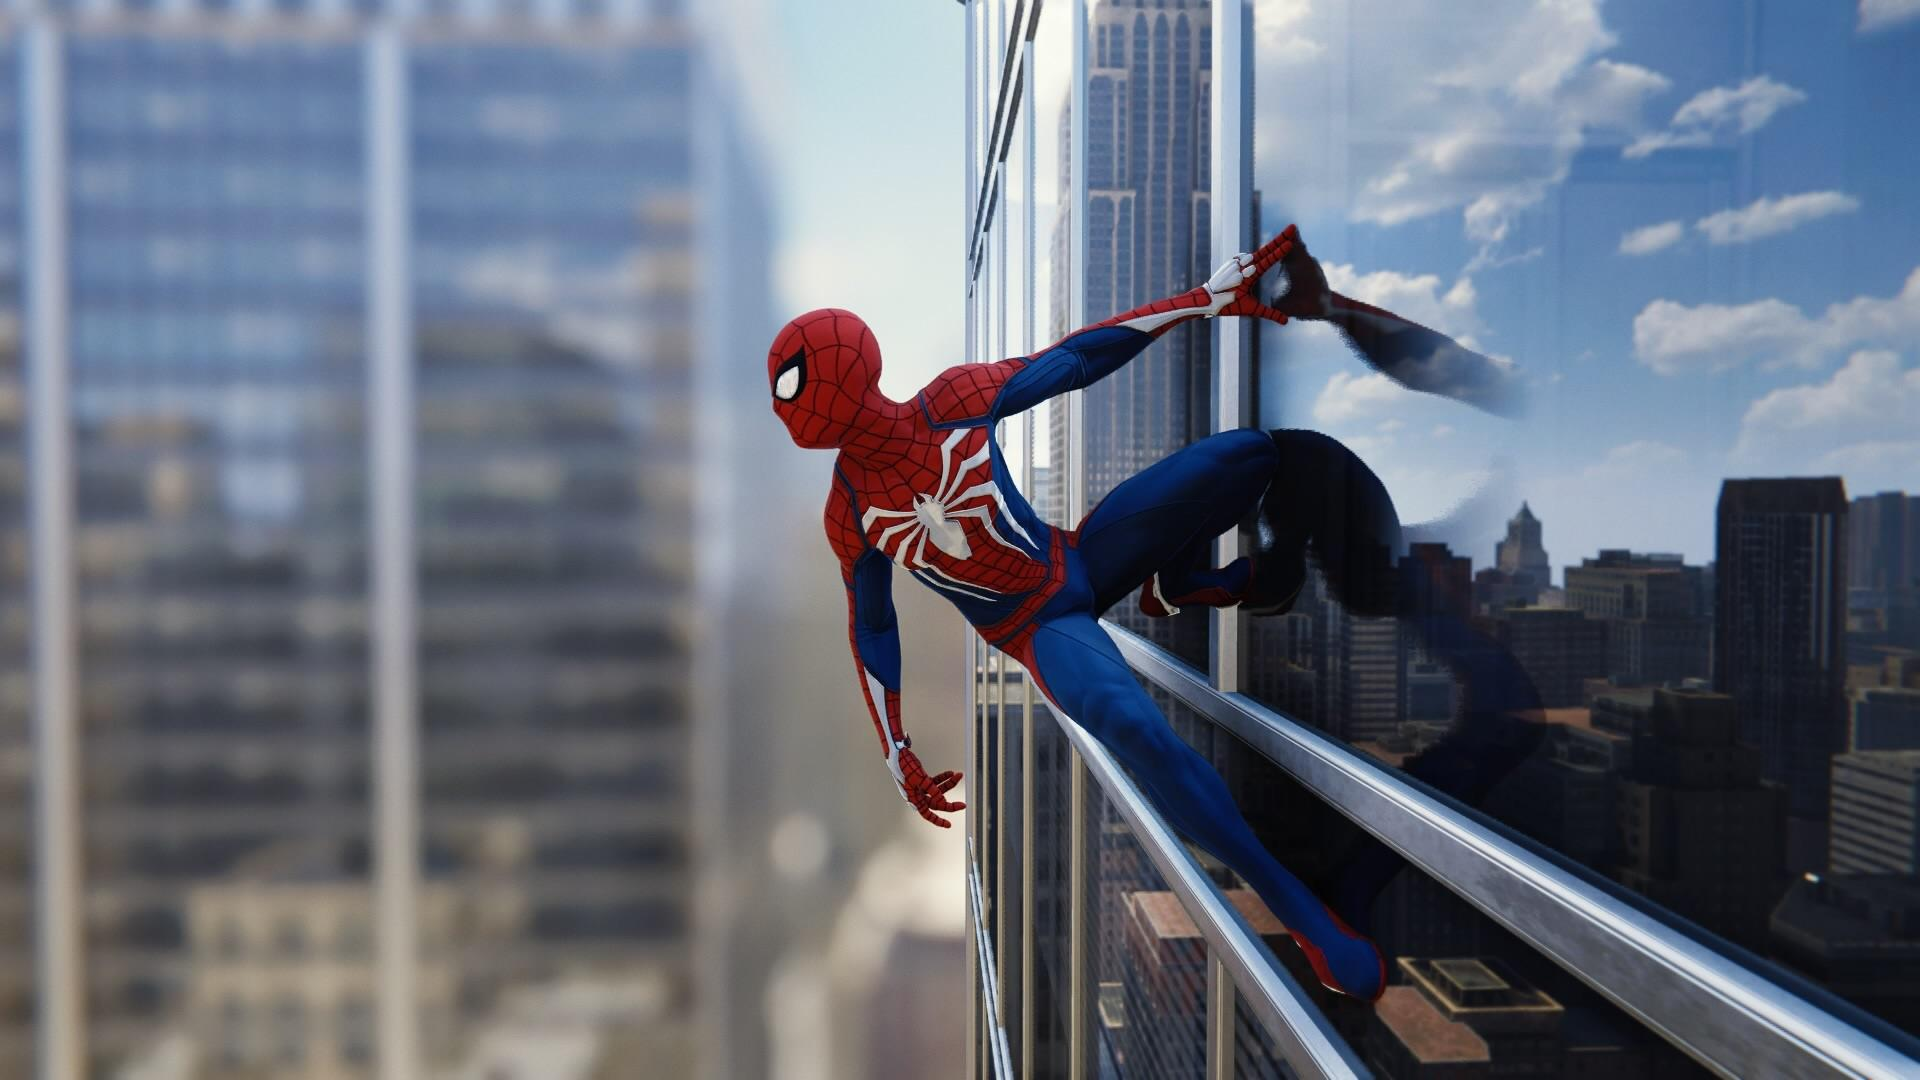 Spider Man Ps4 Wallpapers Top Free Spider Man Ps4